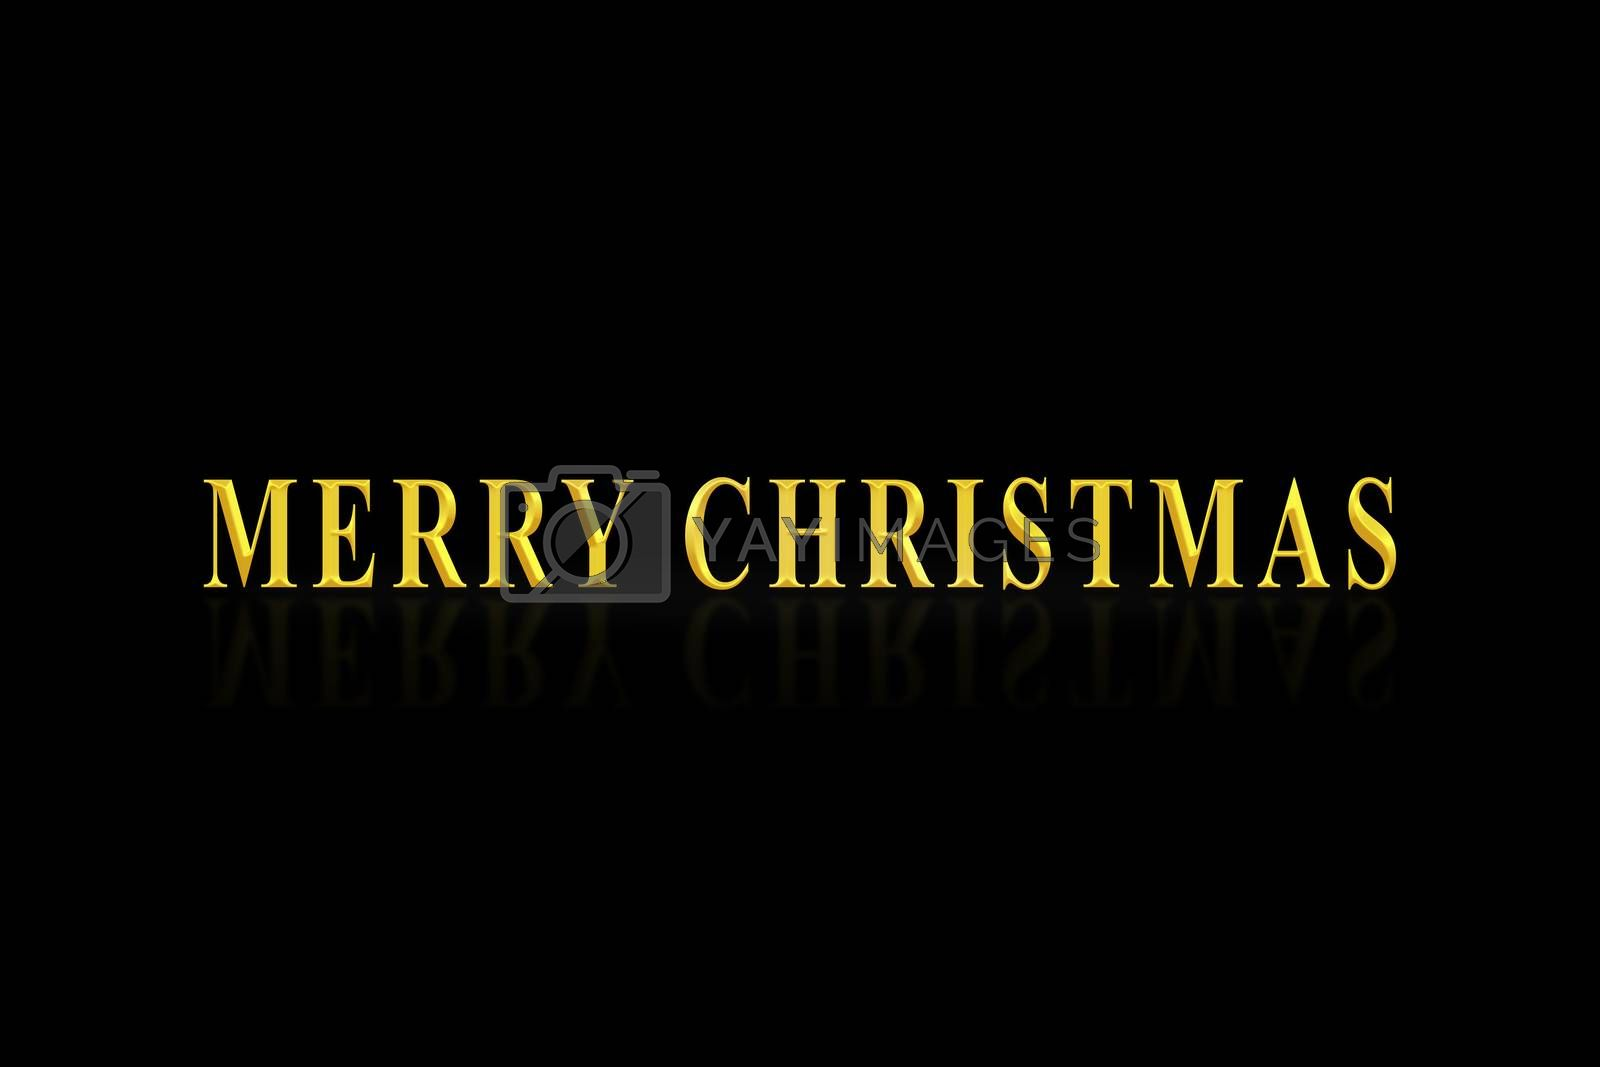 The inscription merry CHRISTMAS in gold letters, black background